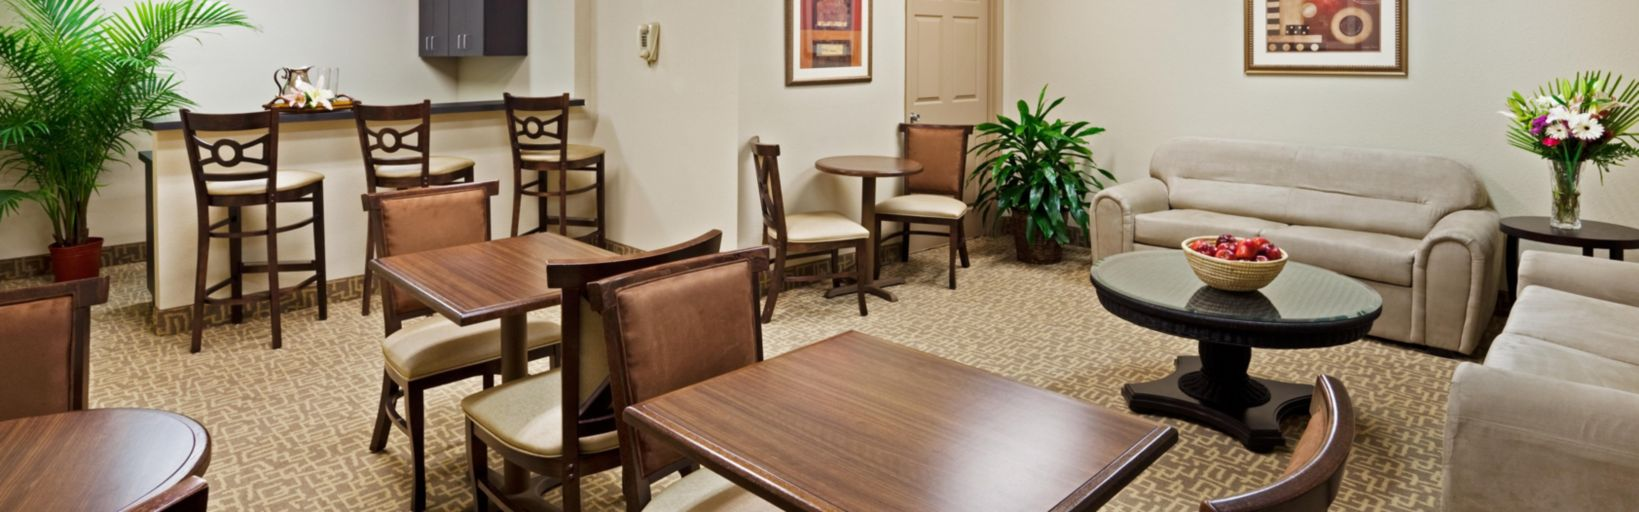 Holiday Inn Hotel Suites Beaufort Highway 21 Hotel Groups